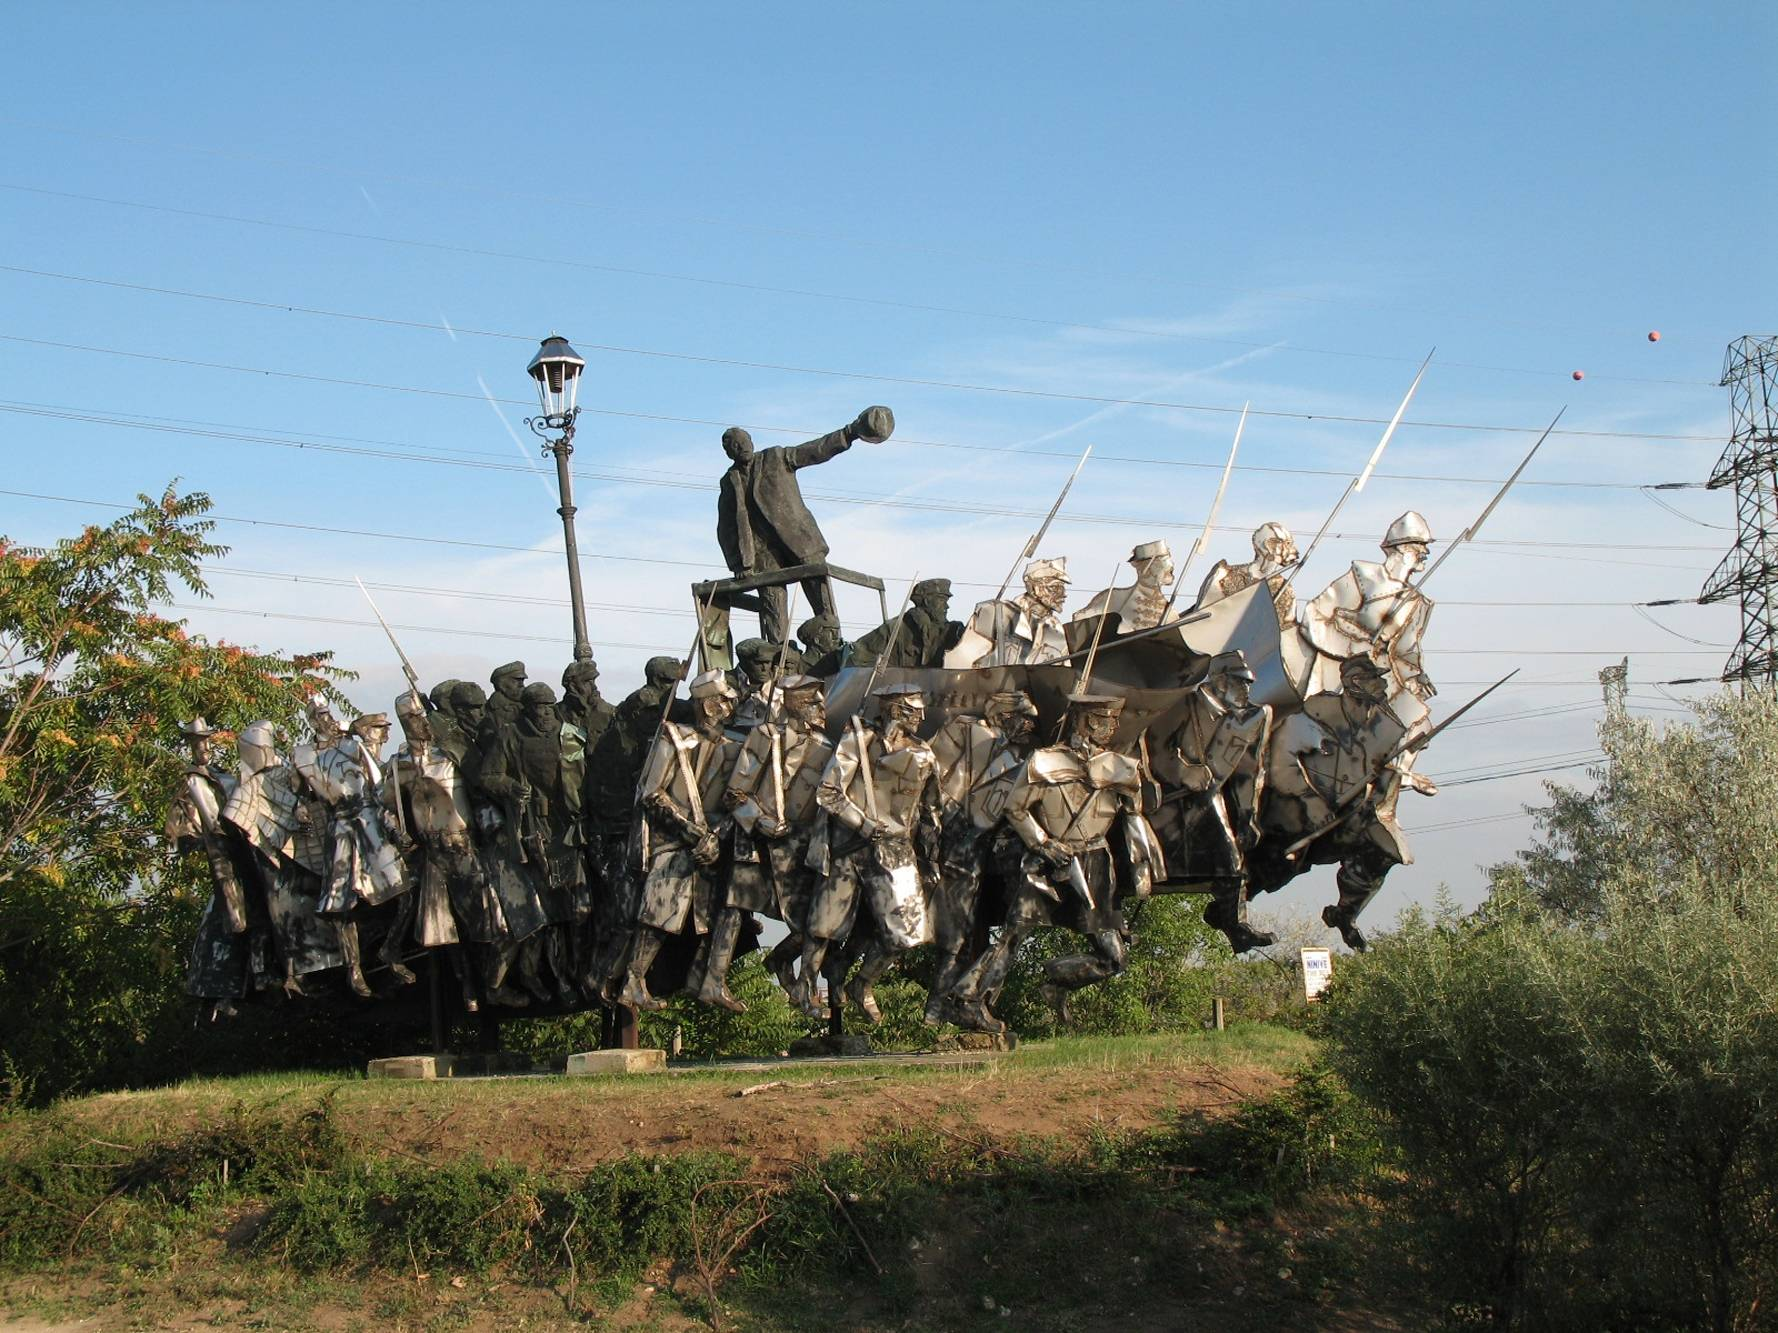 The Bela Kun Memorial is displayed in Memento Park, along with other Communist era statues.